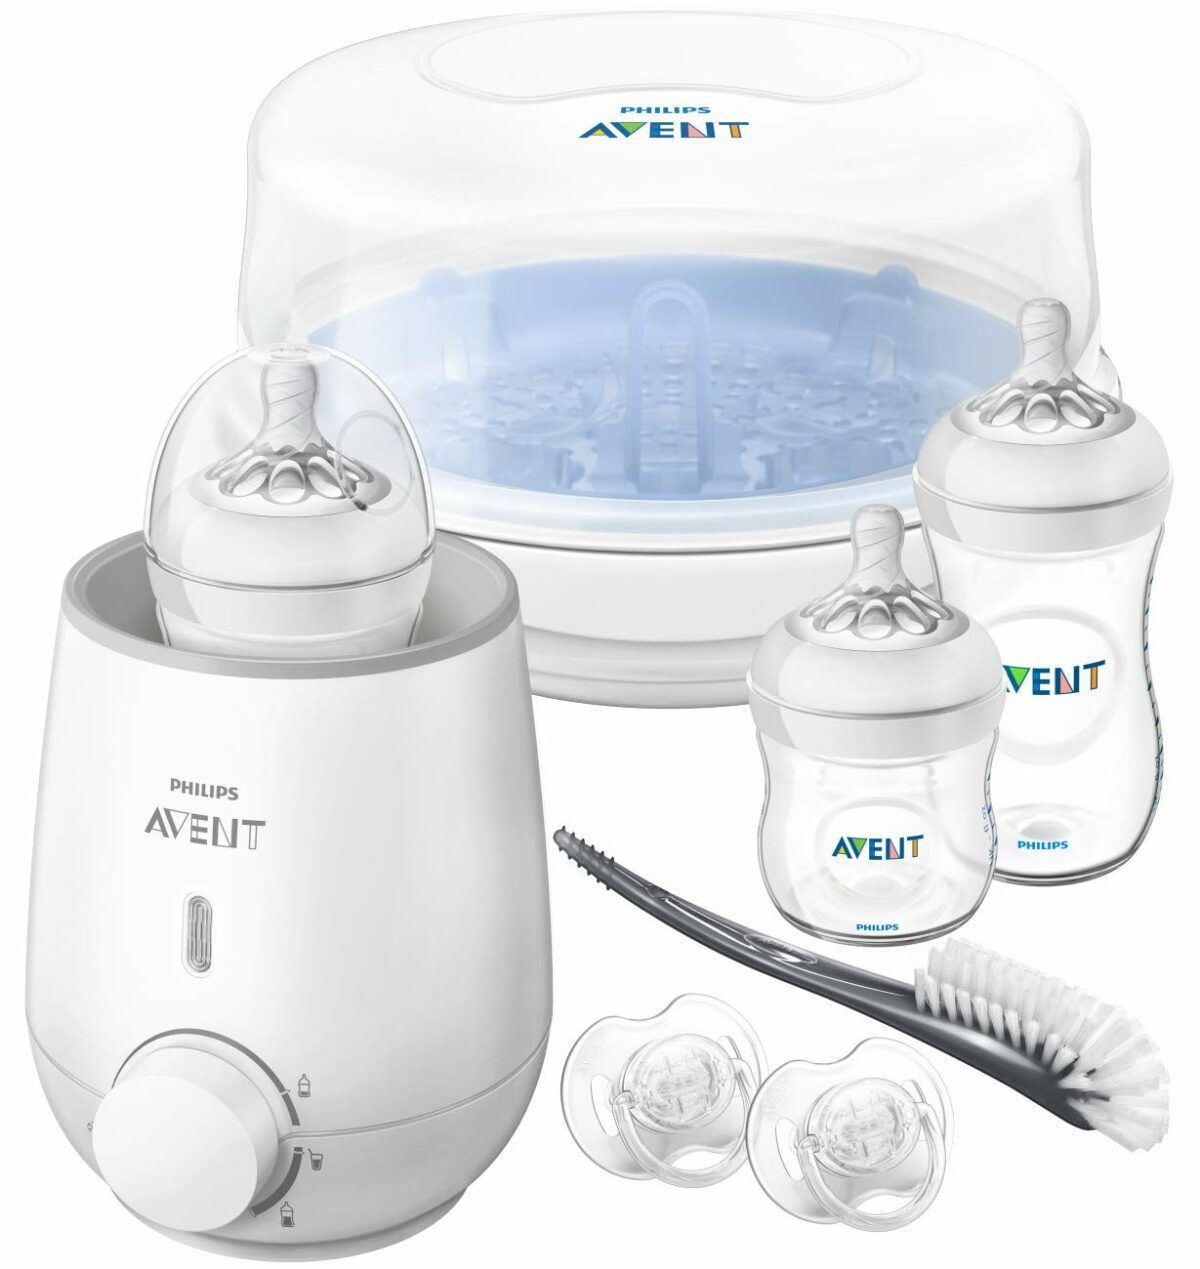 Philips Avent Bottle Warmer Review